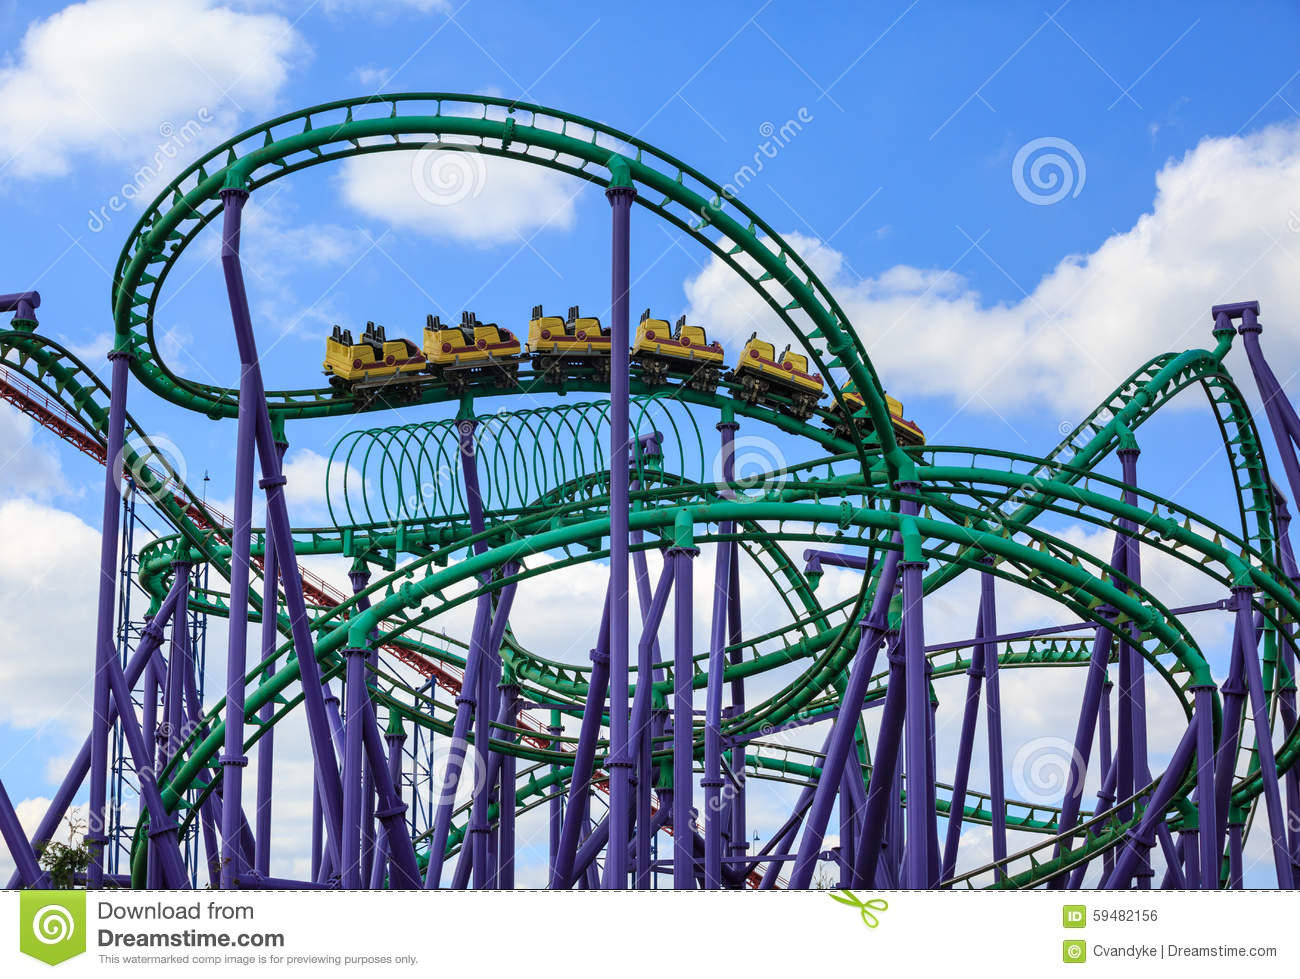 Large Coasters Modern Roller Coaster Amusement Park Stock Photo Image